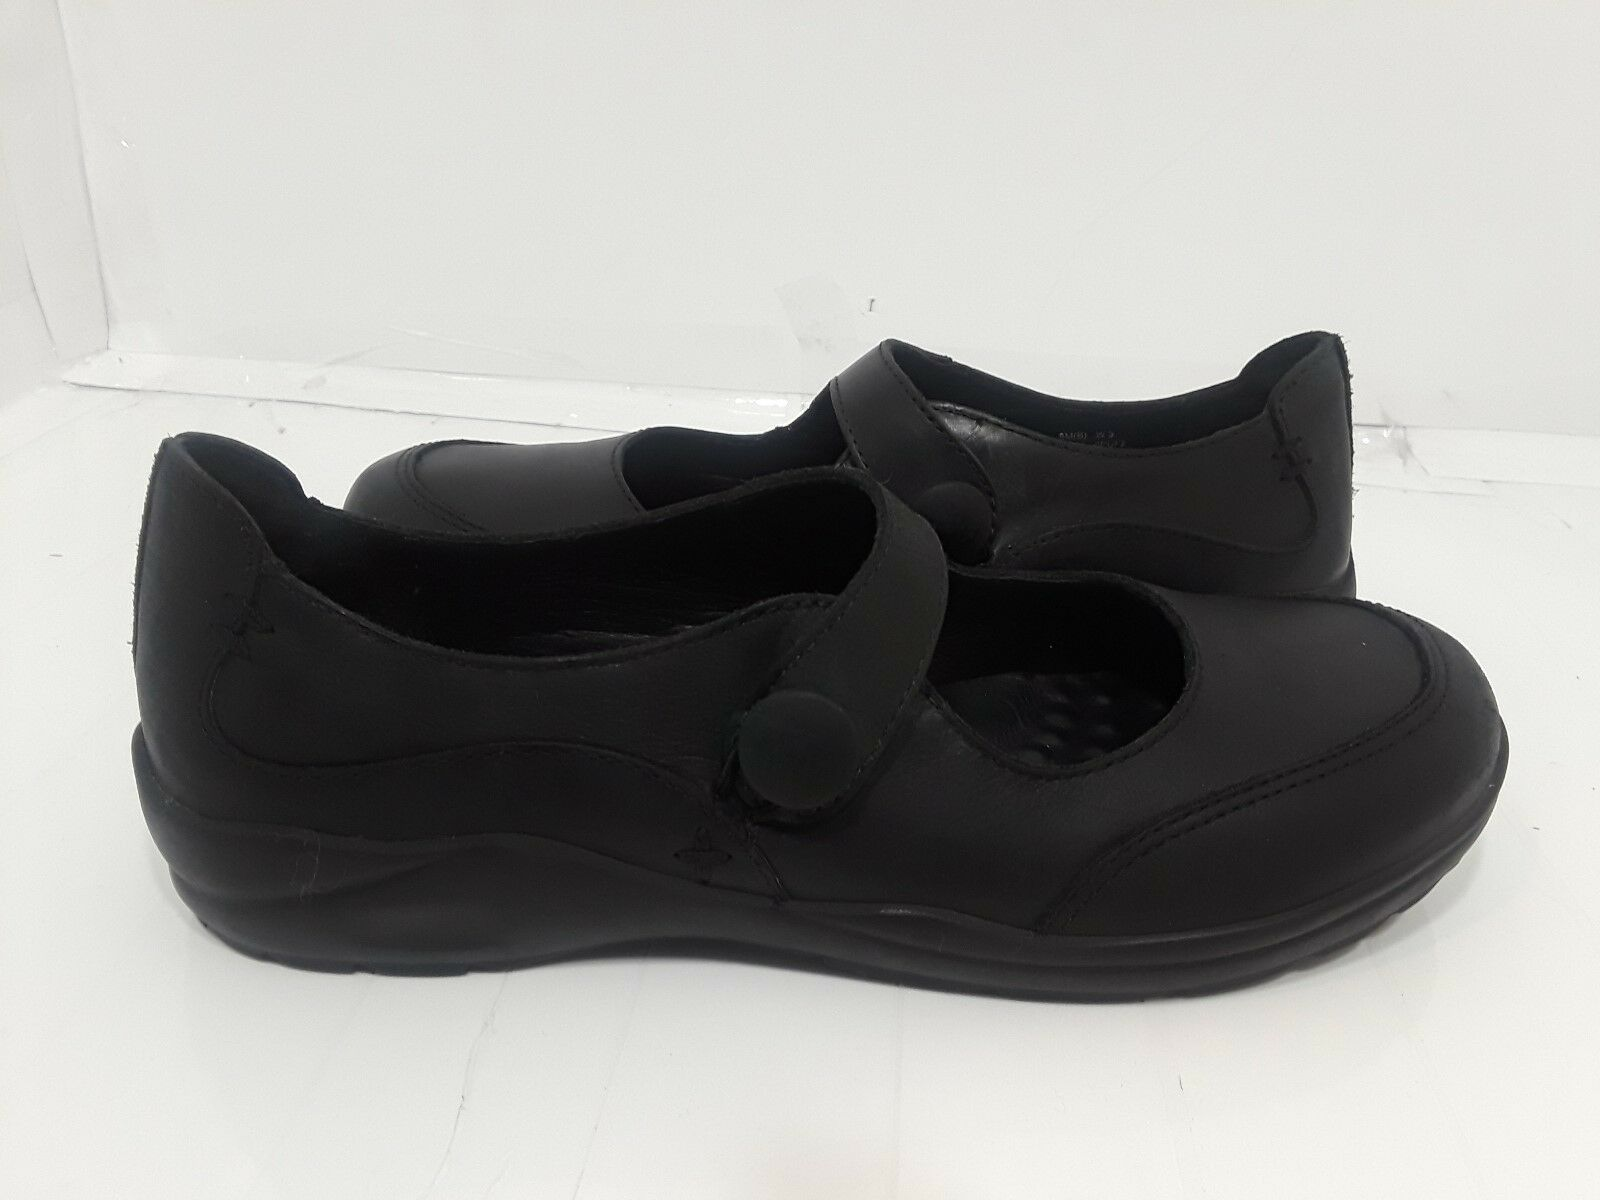 Women's L.L. Bean Shoes Black Leather slip-on loafers Size 8M